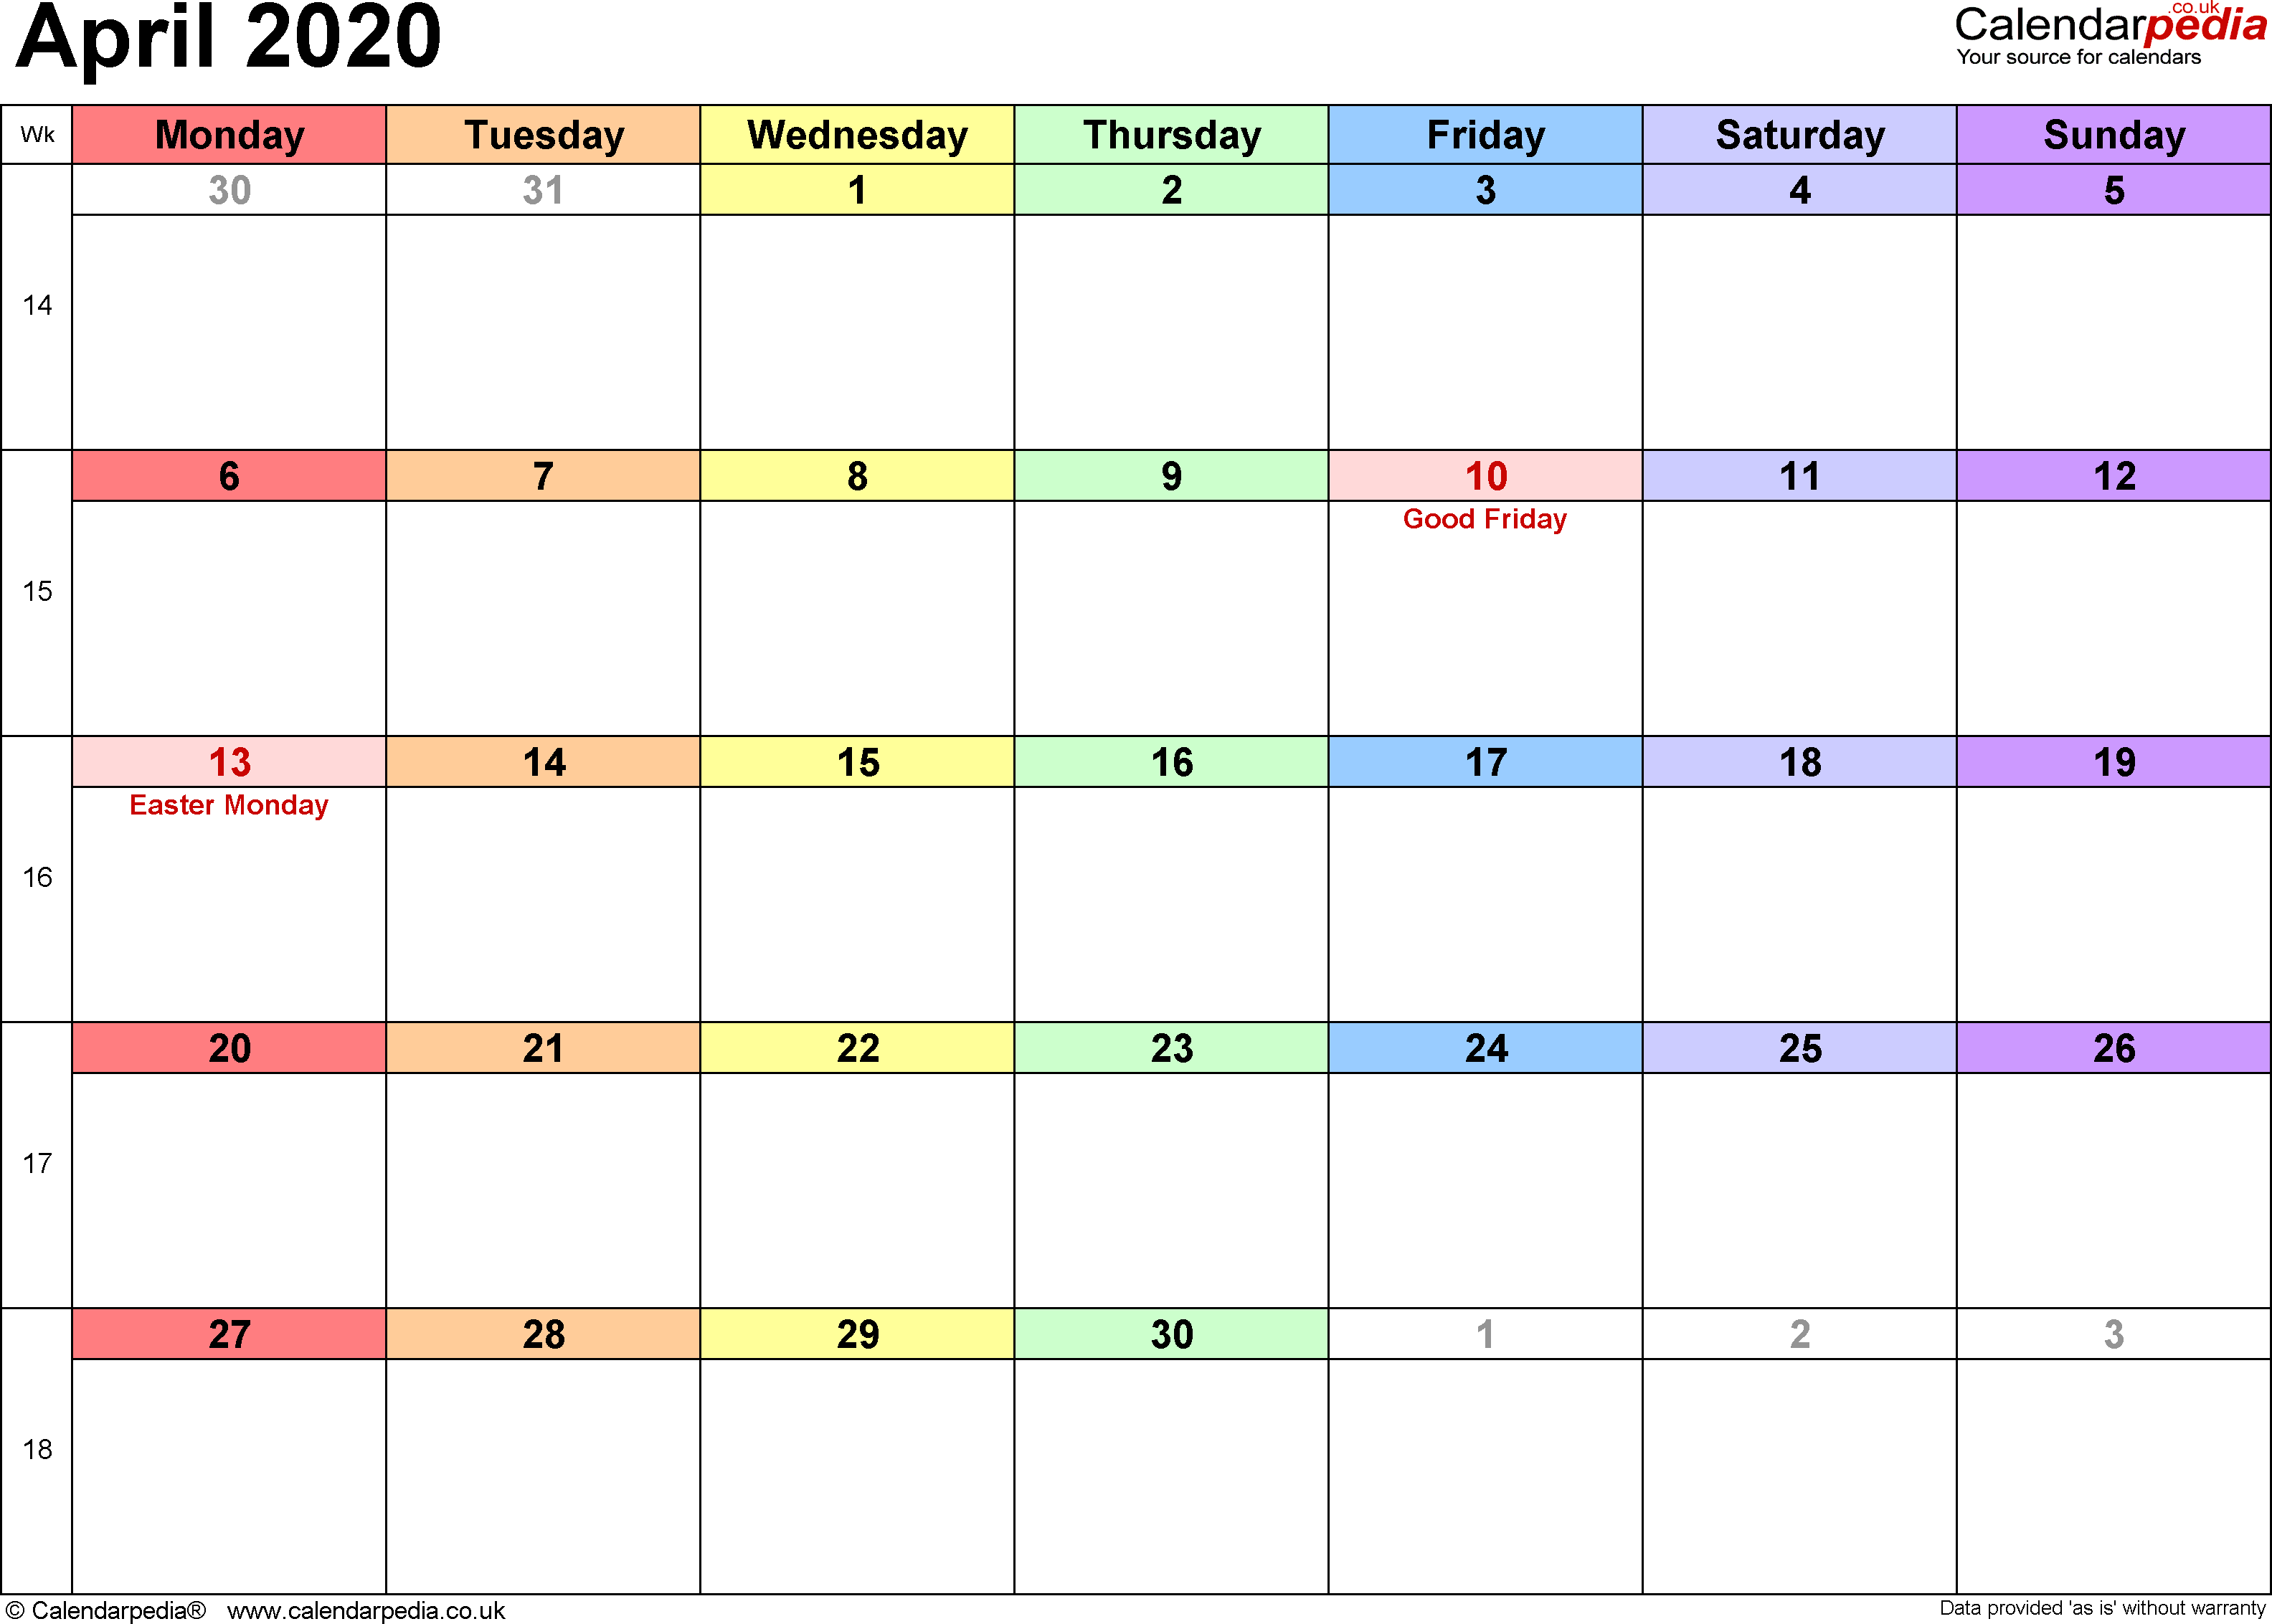 Calendar April 2020, landscape orientation, 1 page, with UK bank holidays and week numbers